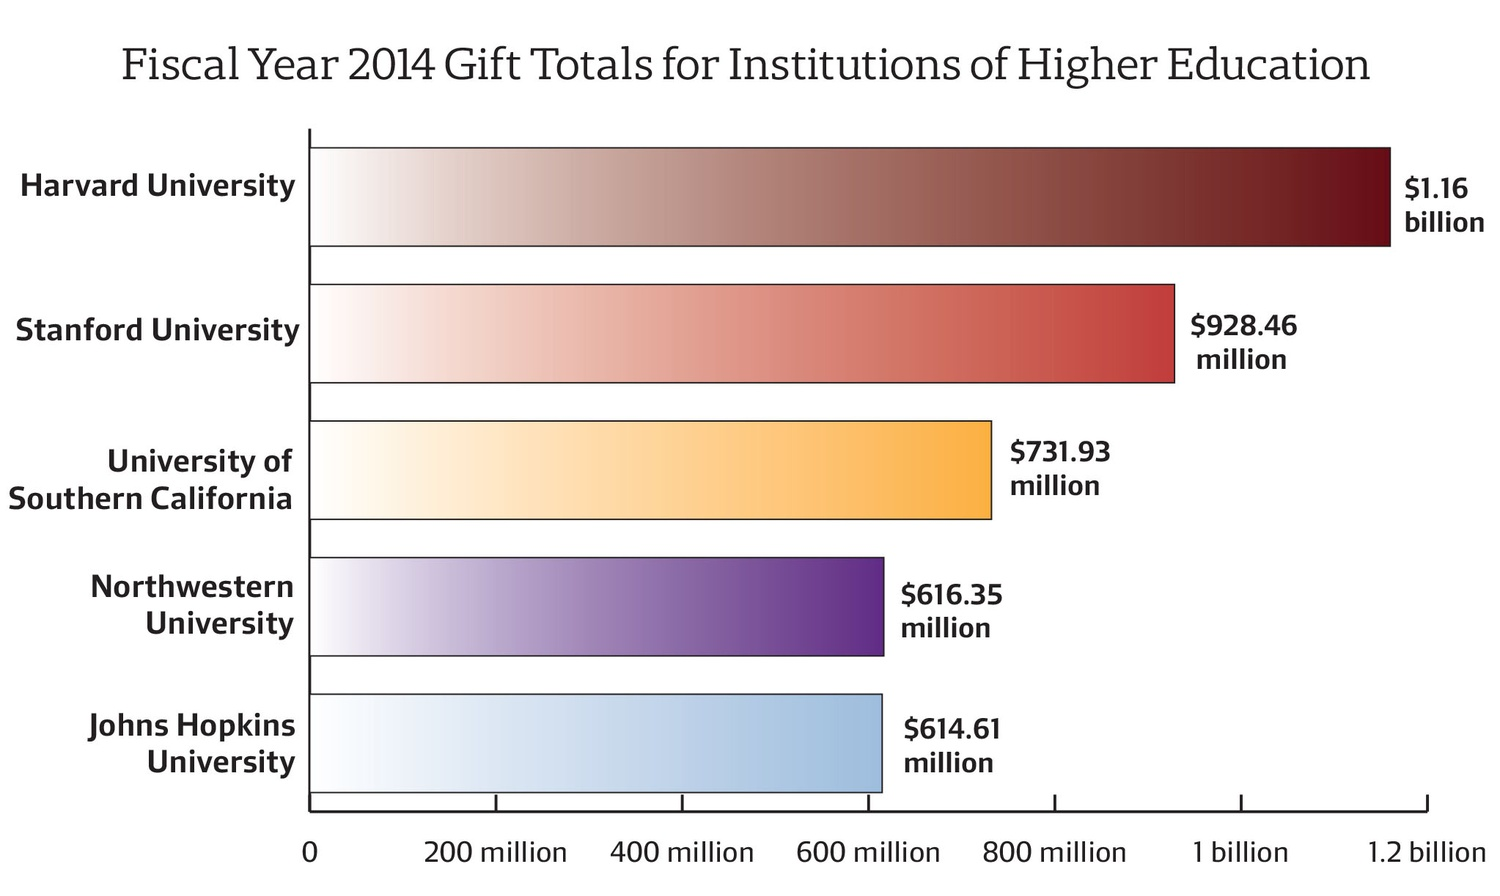 Harvard posted a record-breaking total of $1.16 billion in gifts in Fiscal Year 2014, according to a survey by the Council for Aid to Education.